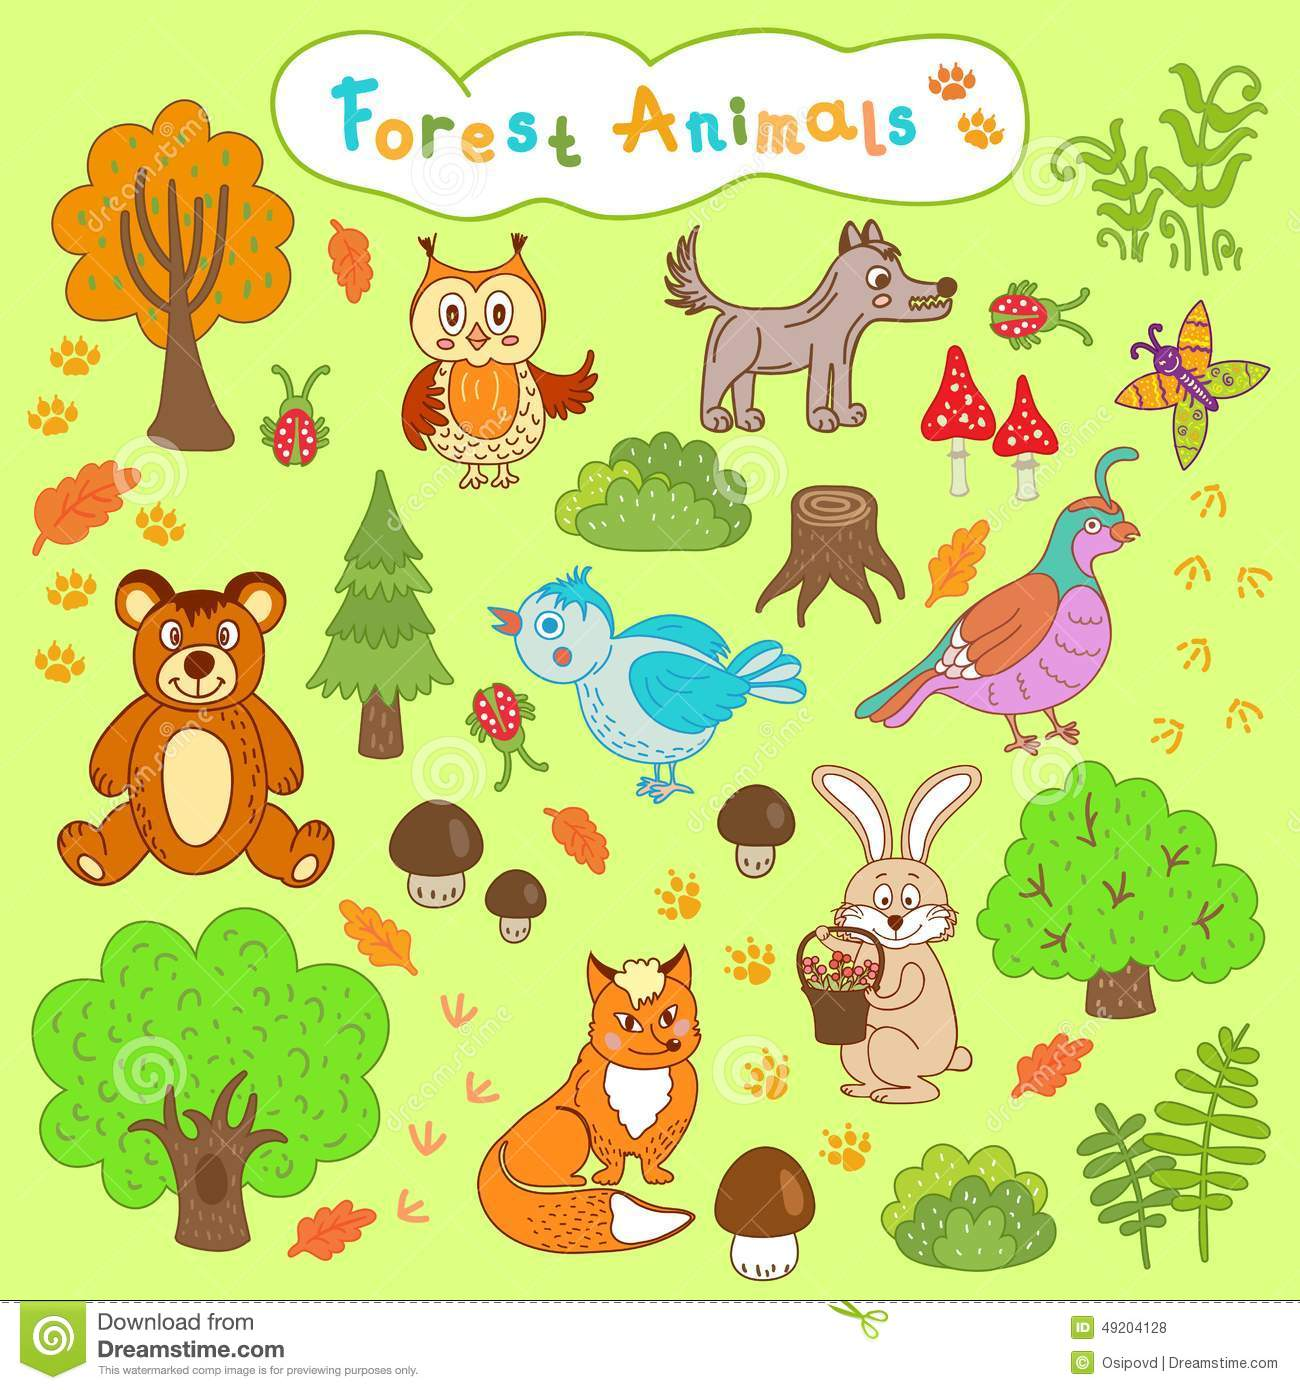 Animal drawings for children - Cartoon